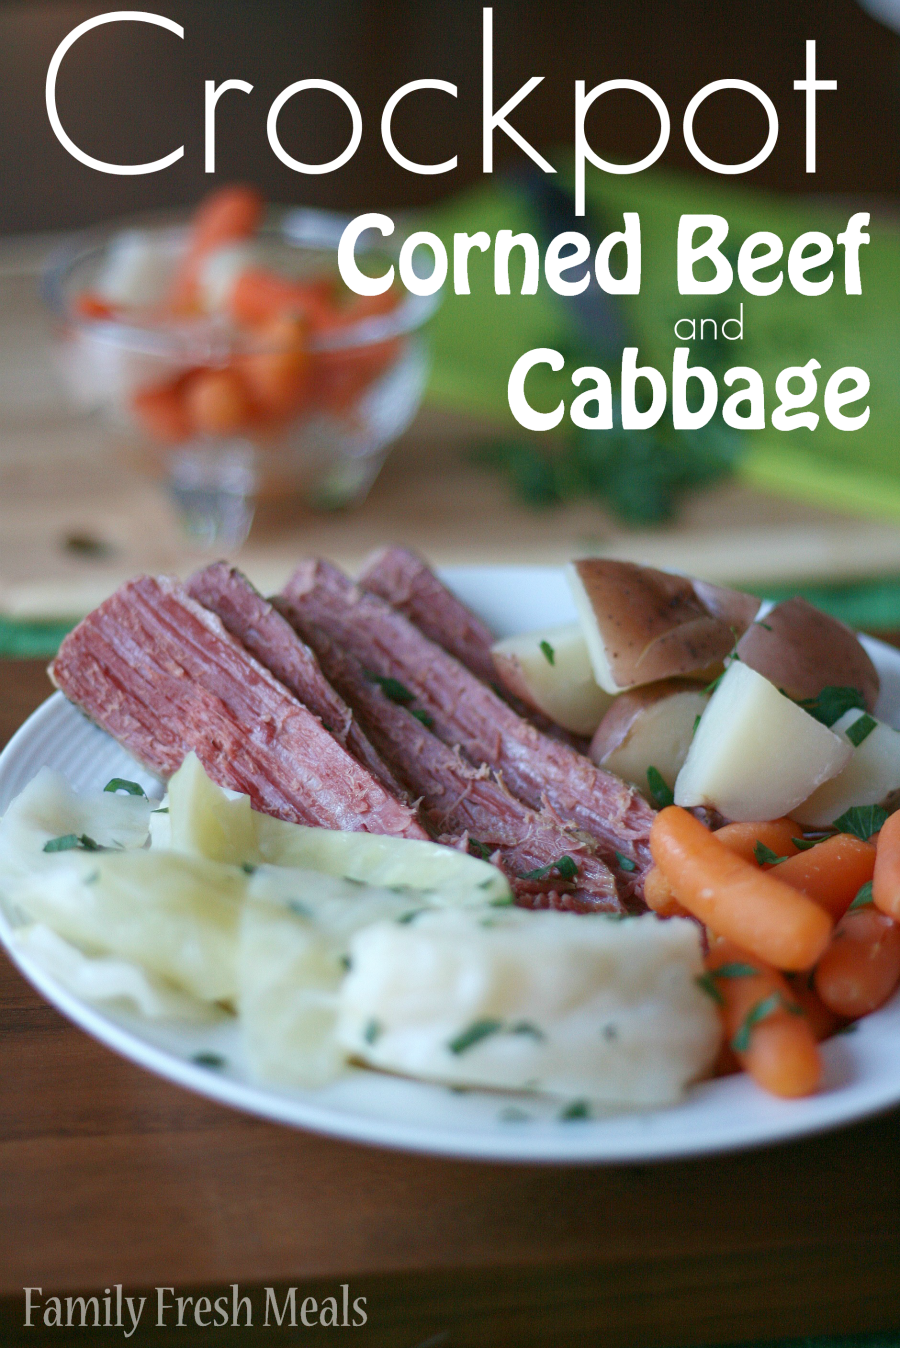 Crockpot Corned Beef and Cabbage - Family Fresh Meals